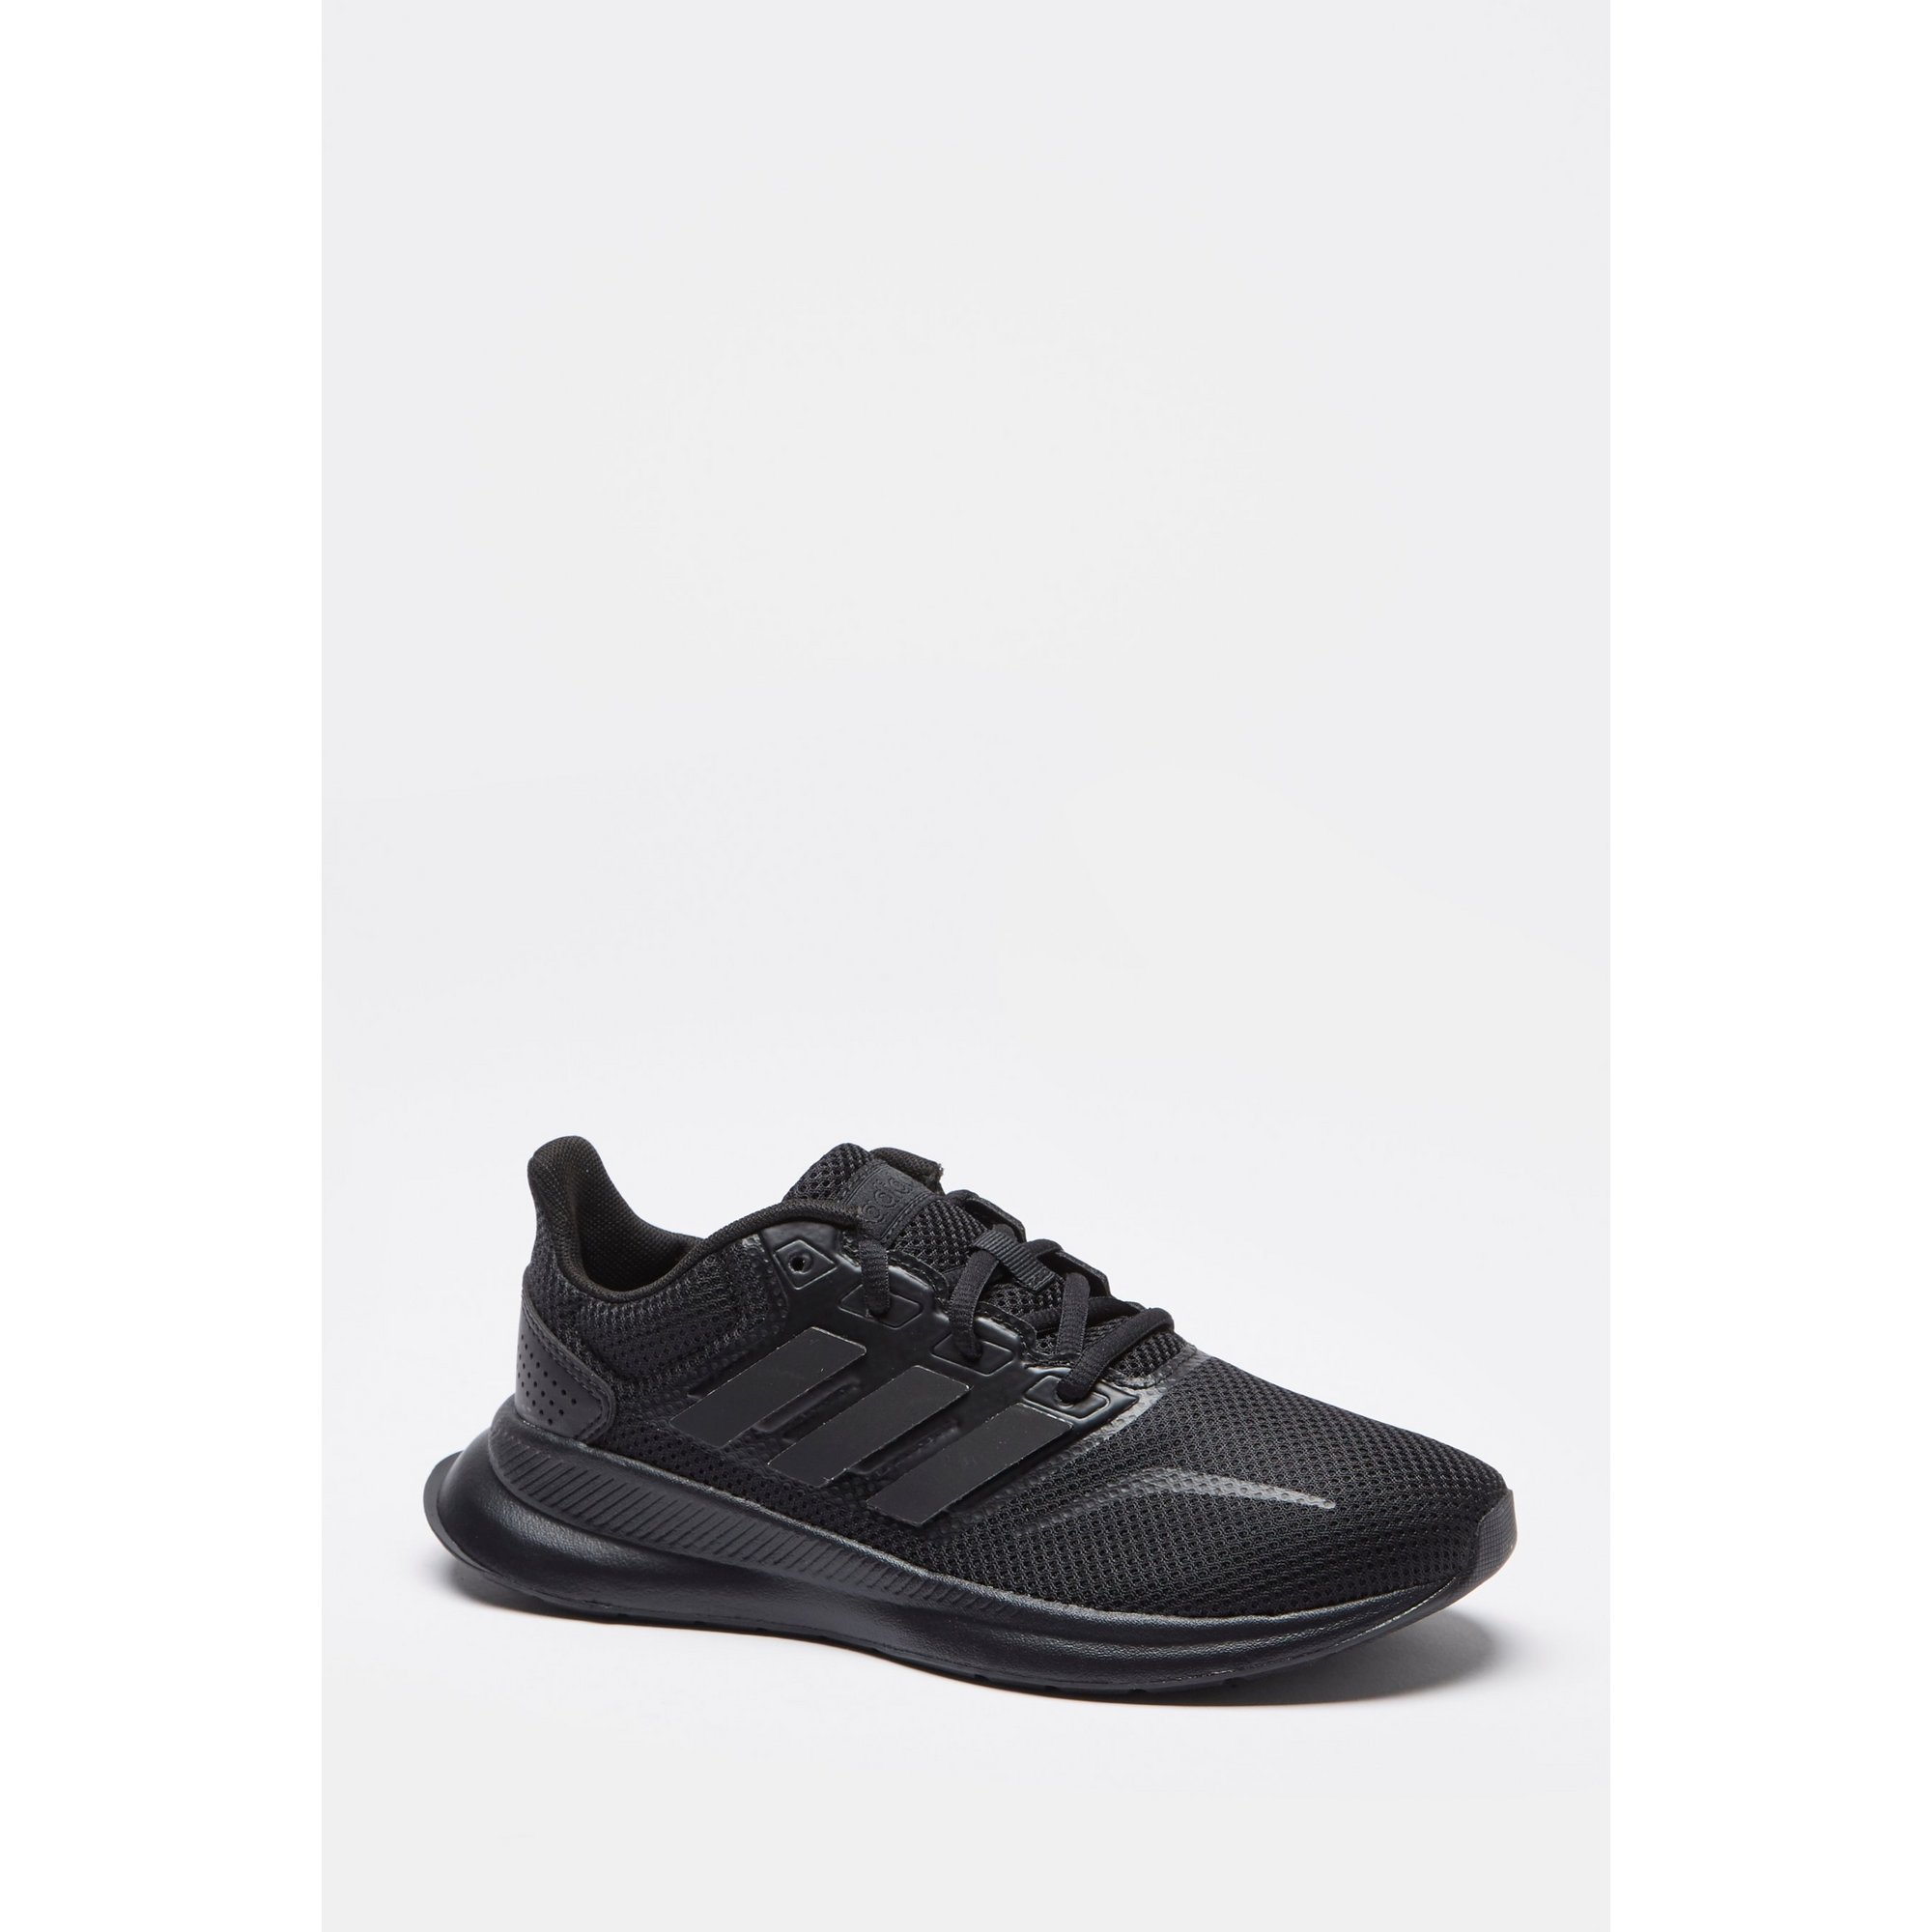 Image of adidas Unisex Run Falcons Trainers